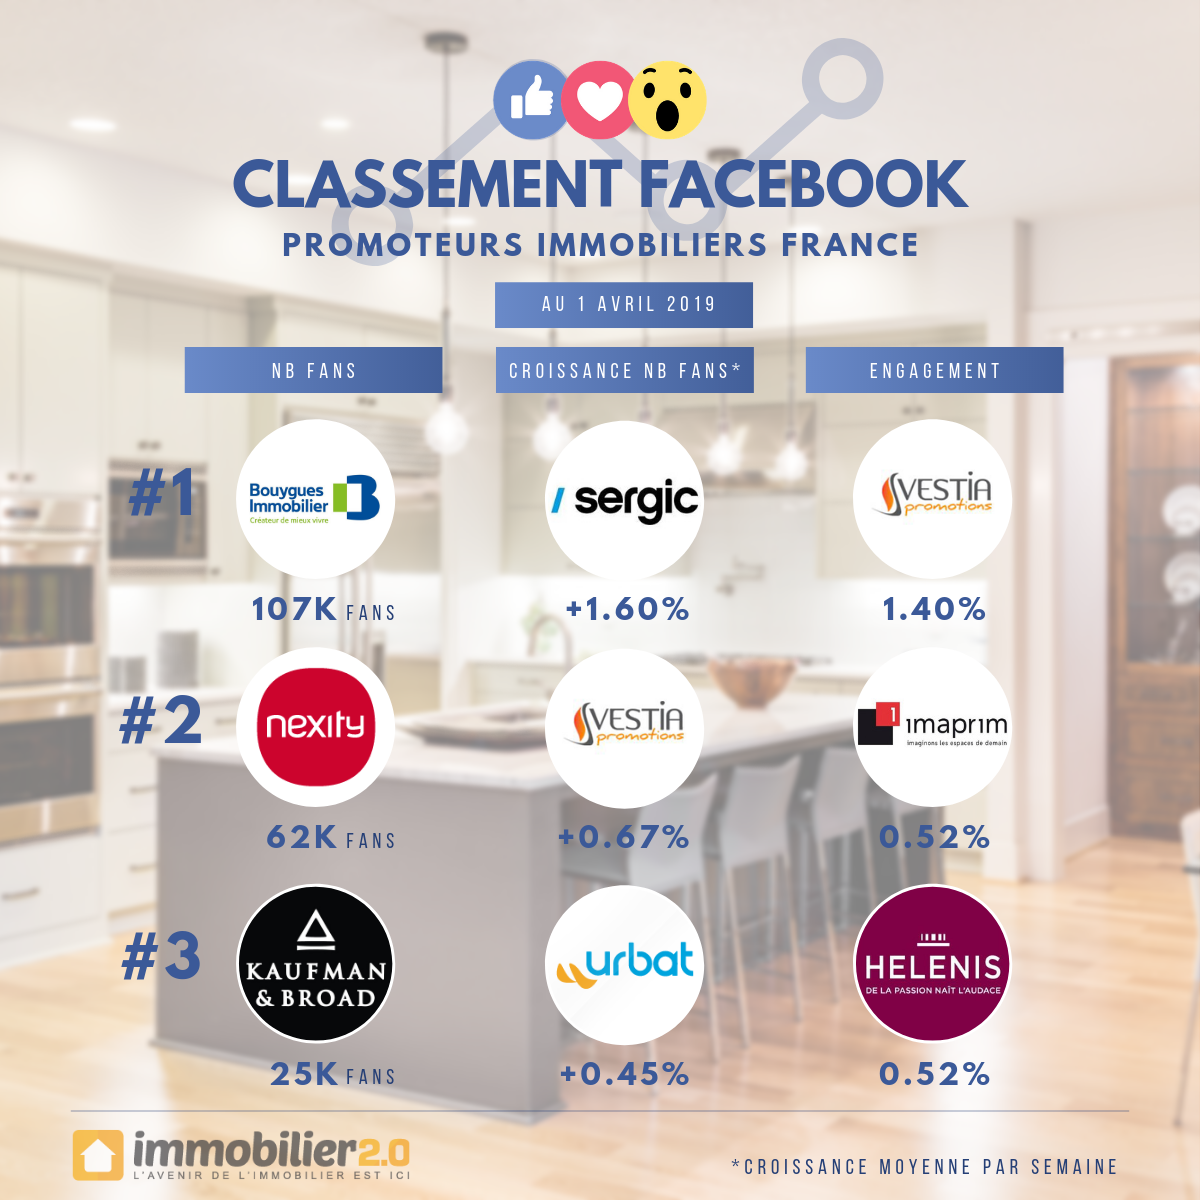 Classement Facebook Promoteurs Immobiliers France Avril 2019